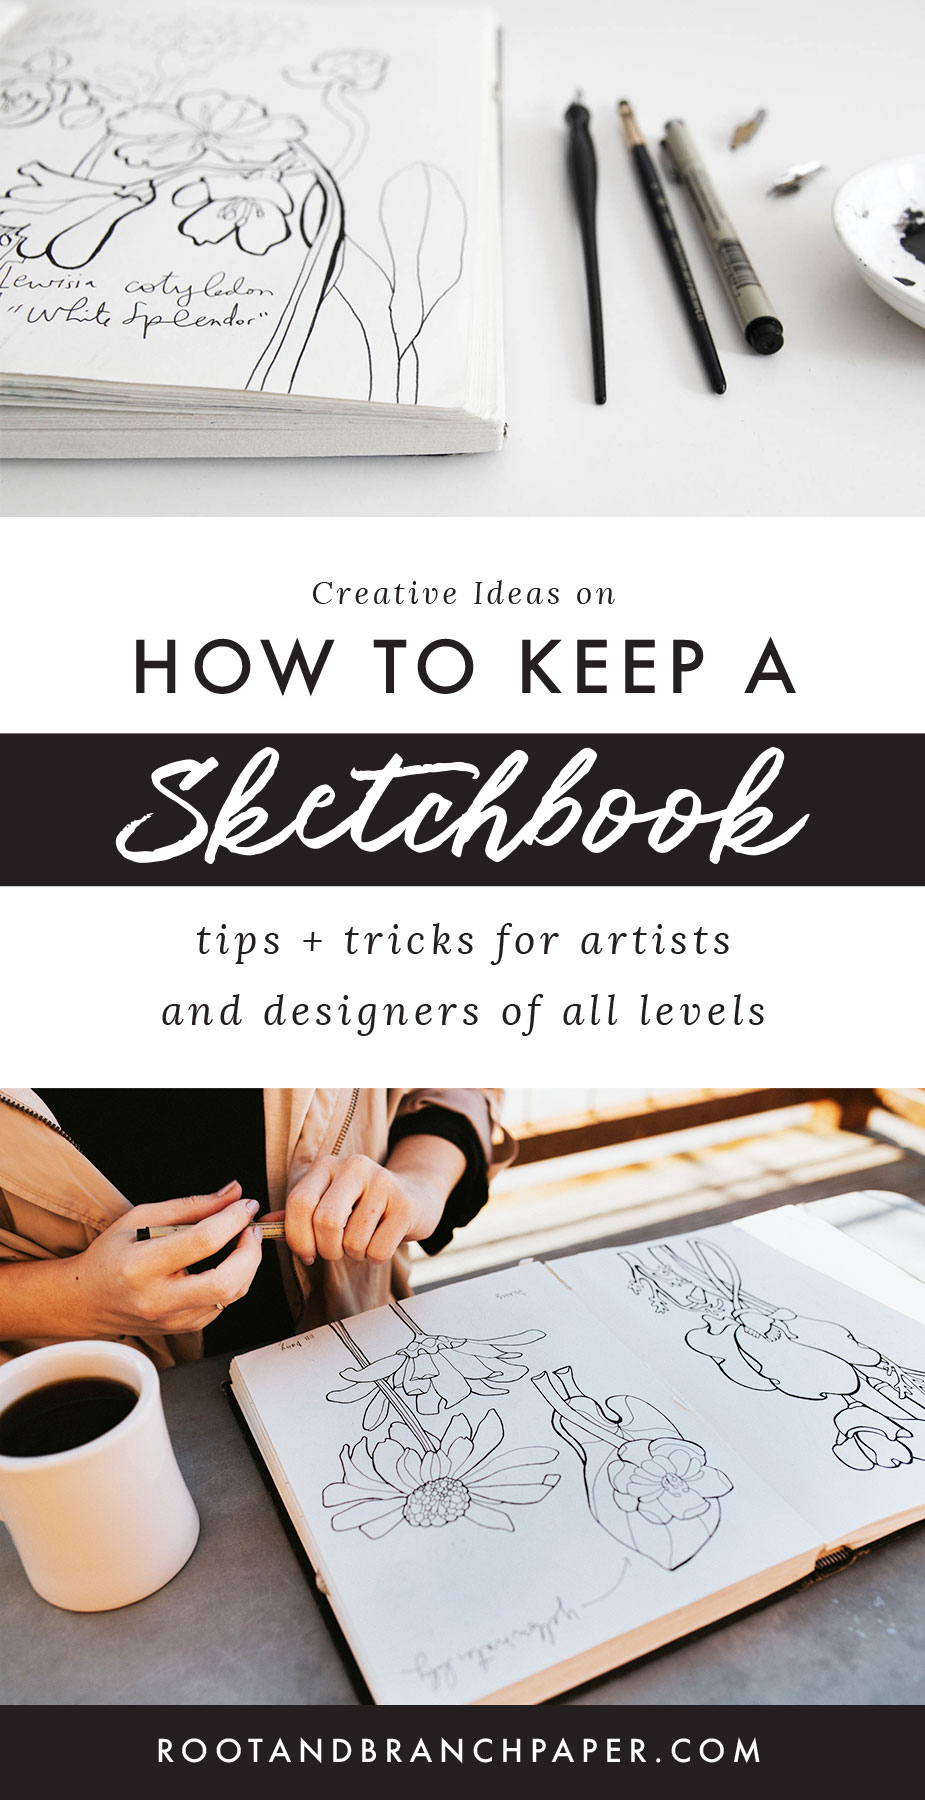 - How to Keep a Sketchbook | 10+ Creative Sketchbook Journal Ideas, Tips and Tricks for Artists of All Levels on What to Put in a Sketchbook from Root & Branch Paper Co.